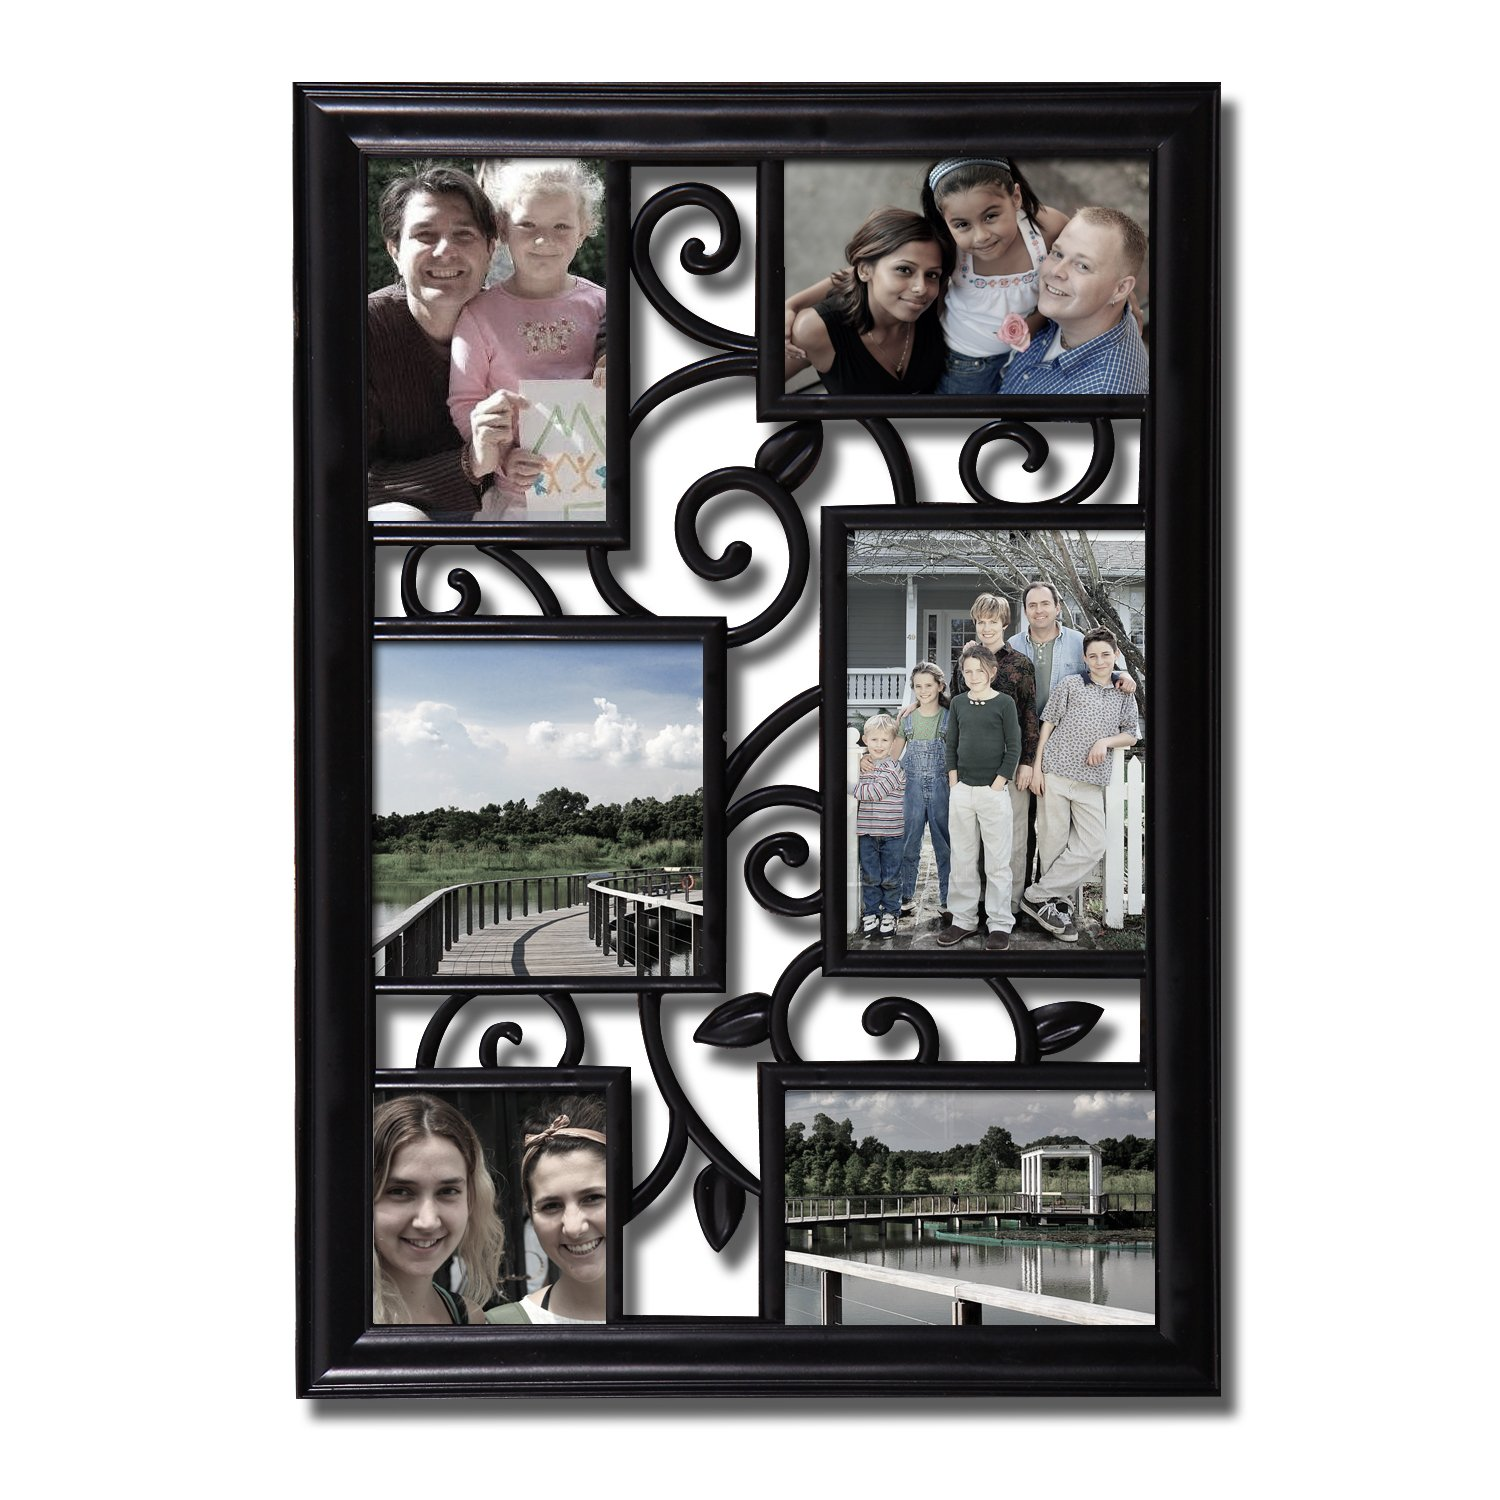 818fadffe4f Amazon.com  Adeco 6 Opening Decorative Black Filigree Wall Hanging Picture  Frame - Made to Display Three 4x6